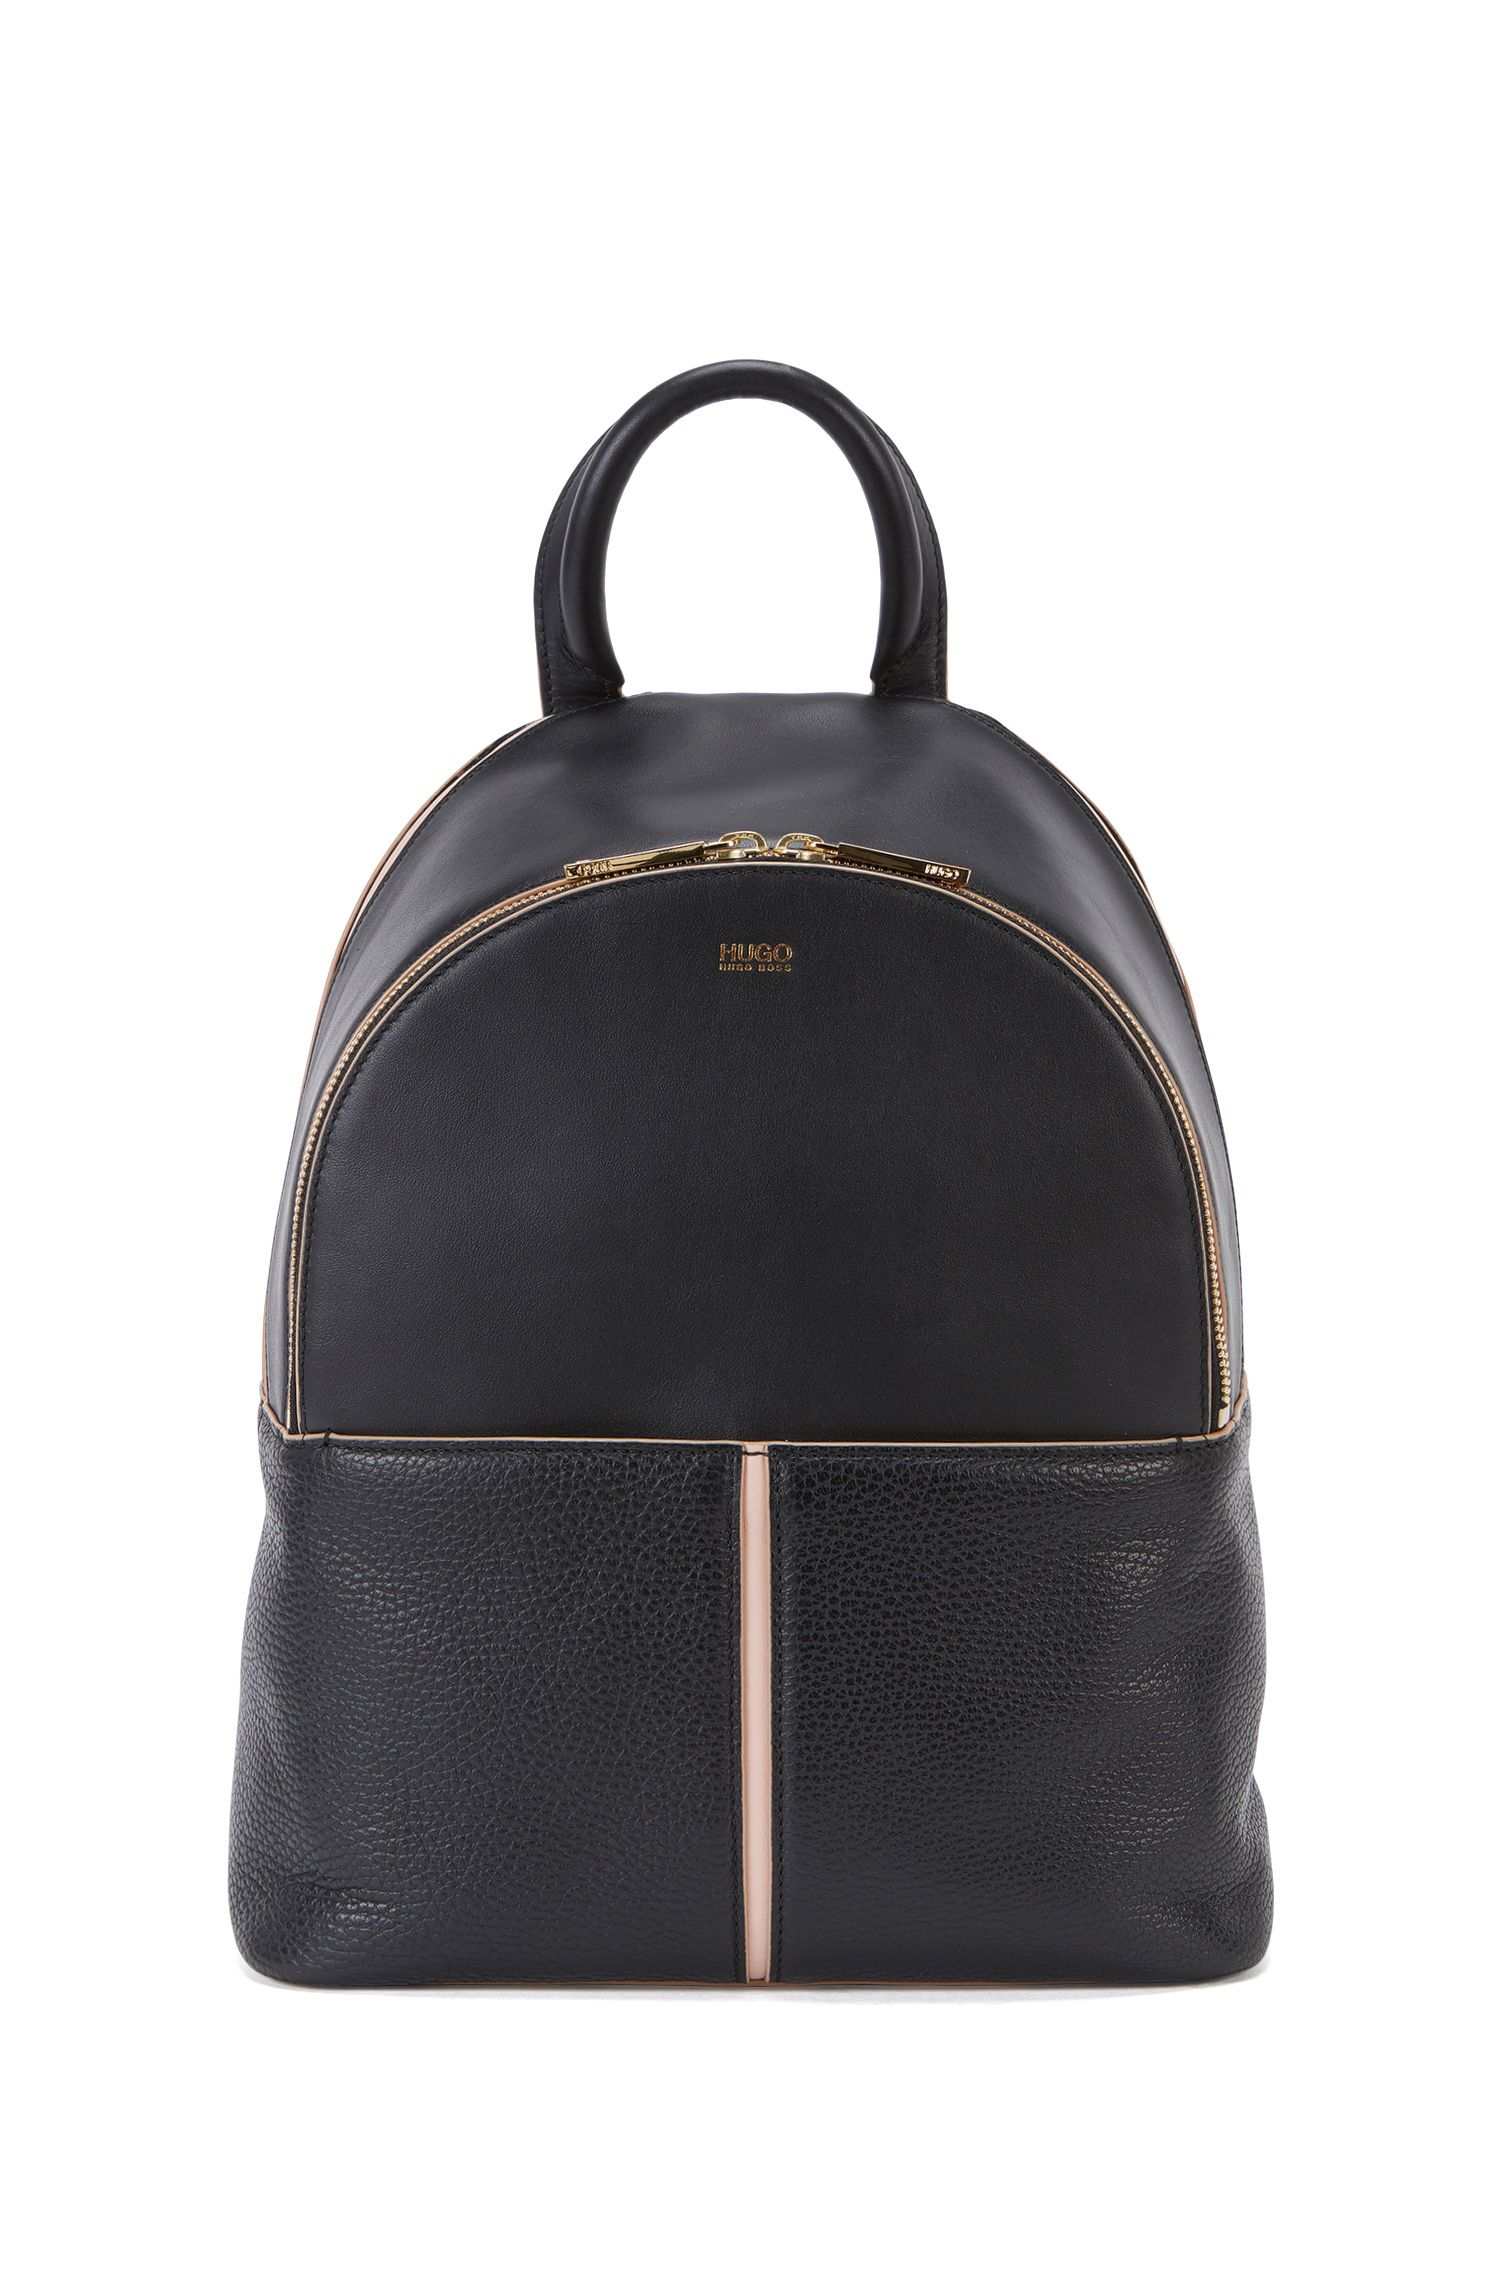 Multi-compartment backpack in contrast leather